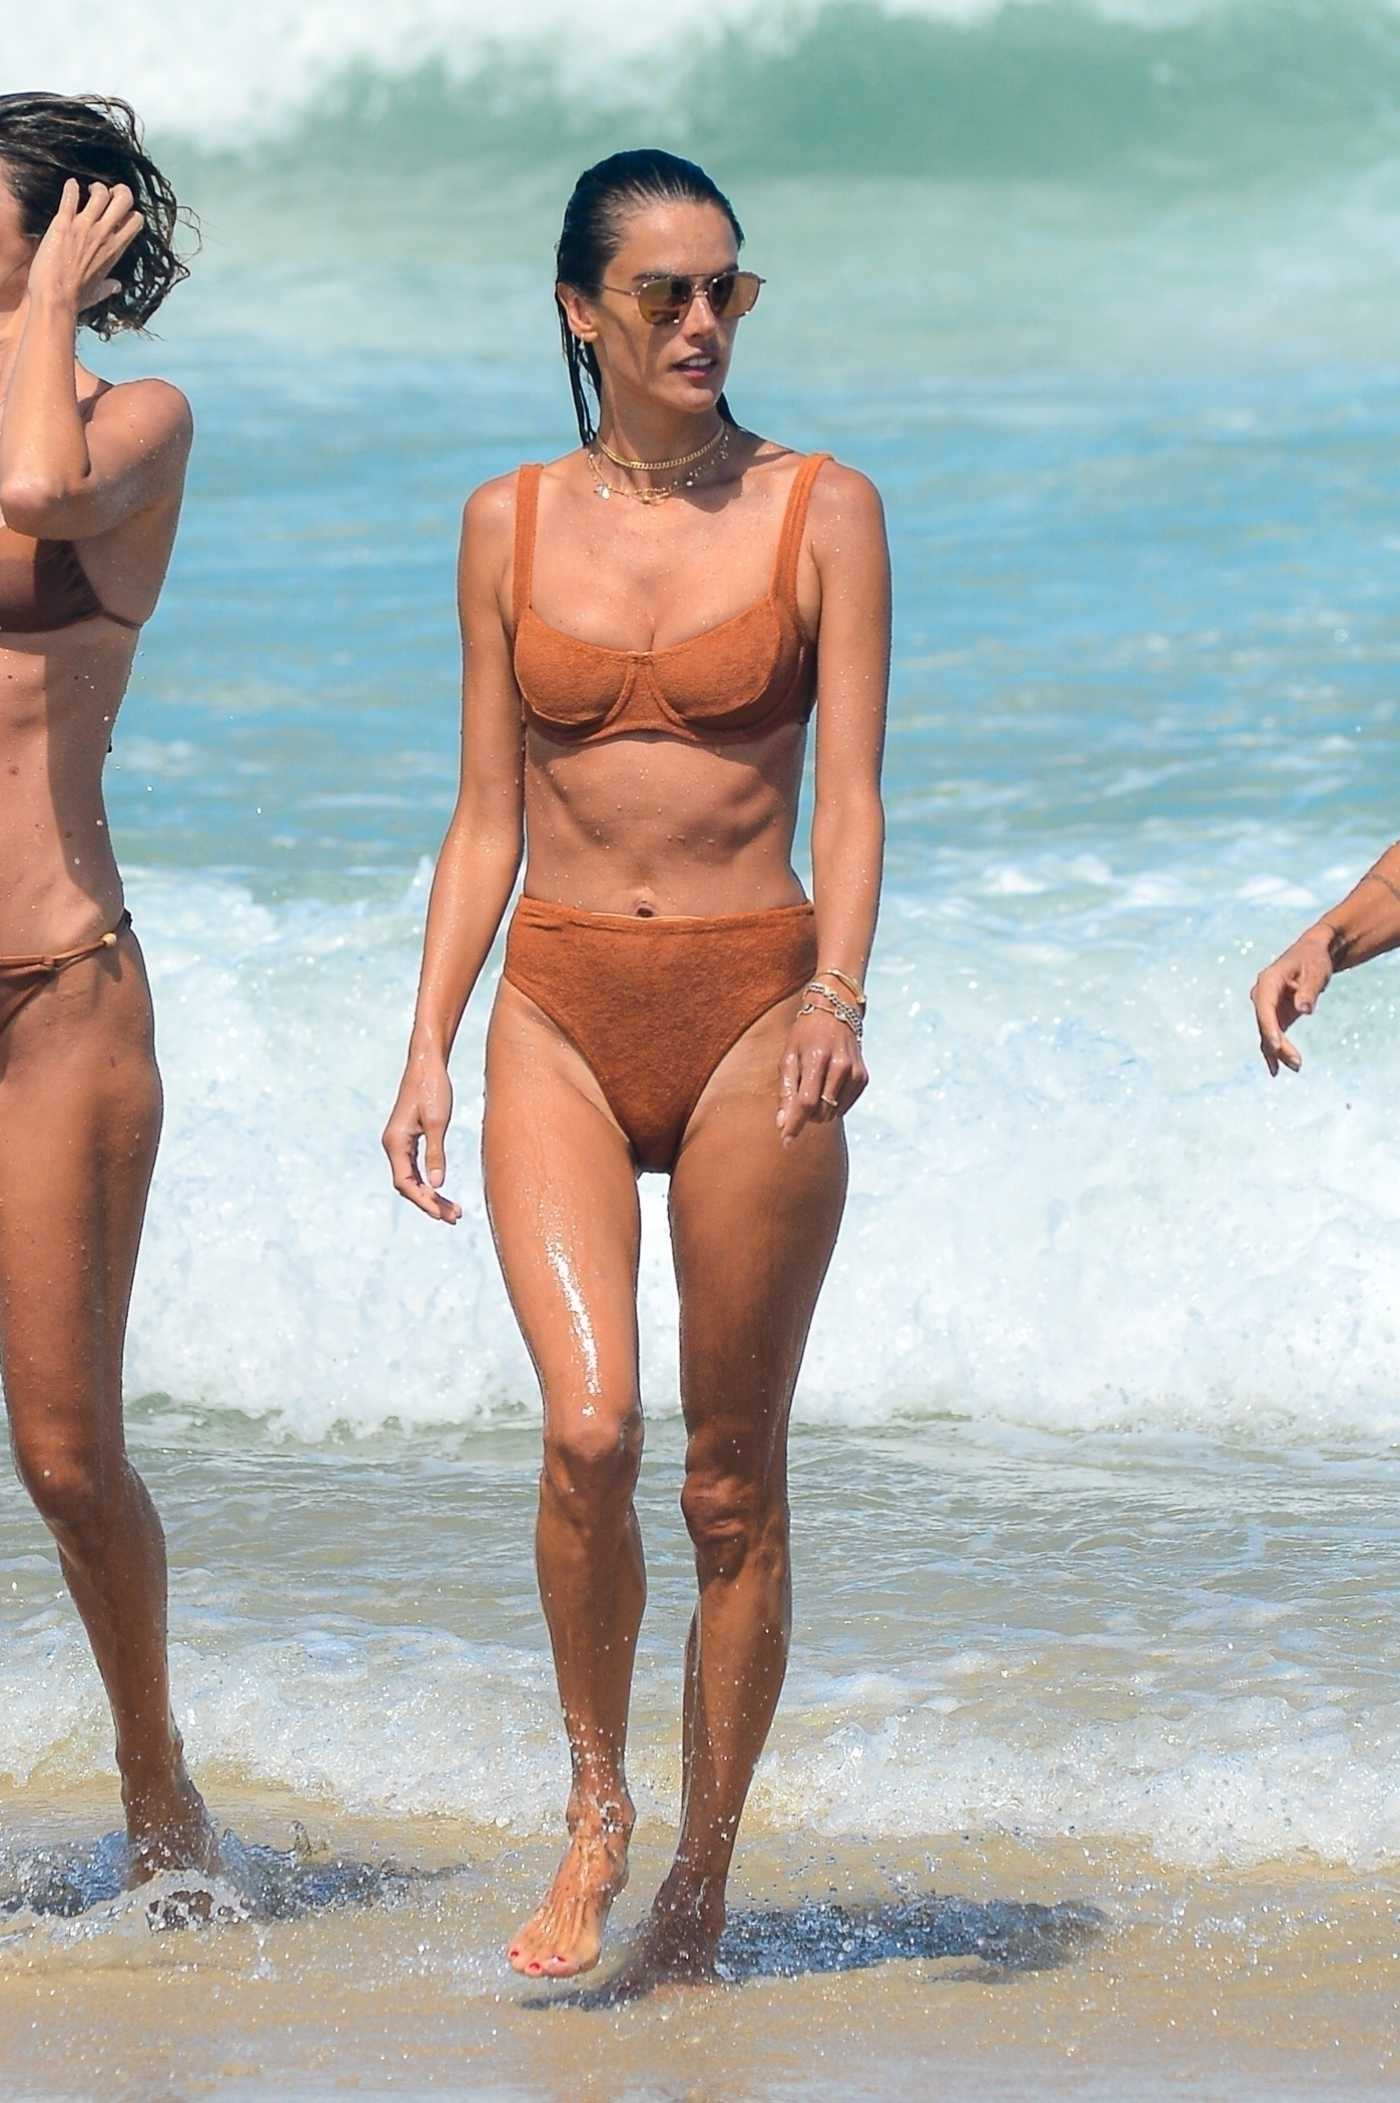 Alessandra Ambrosio in a Tan Bikini on the Beach in Florianoplis 01/22/2021